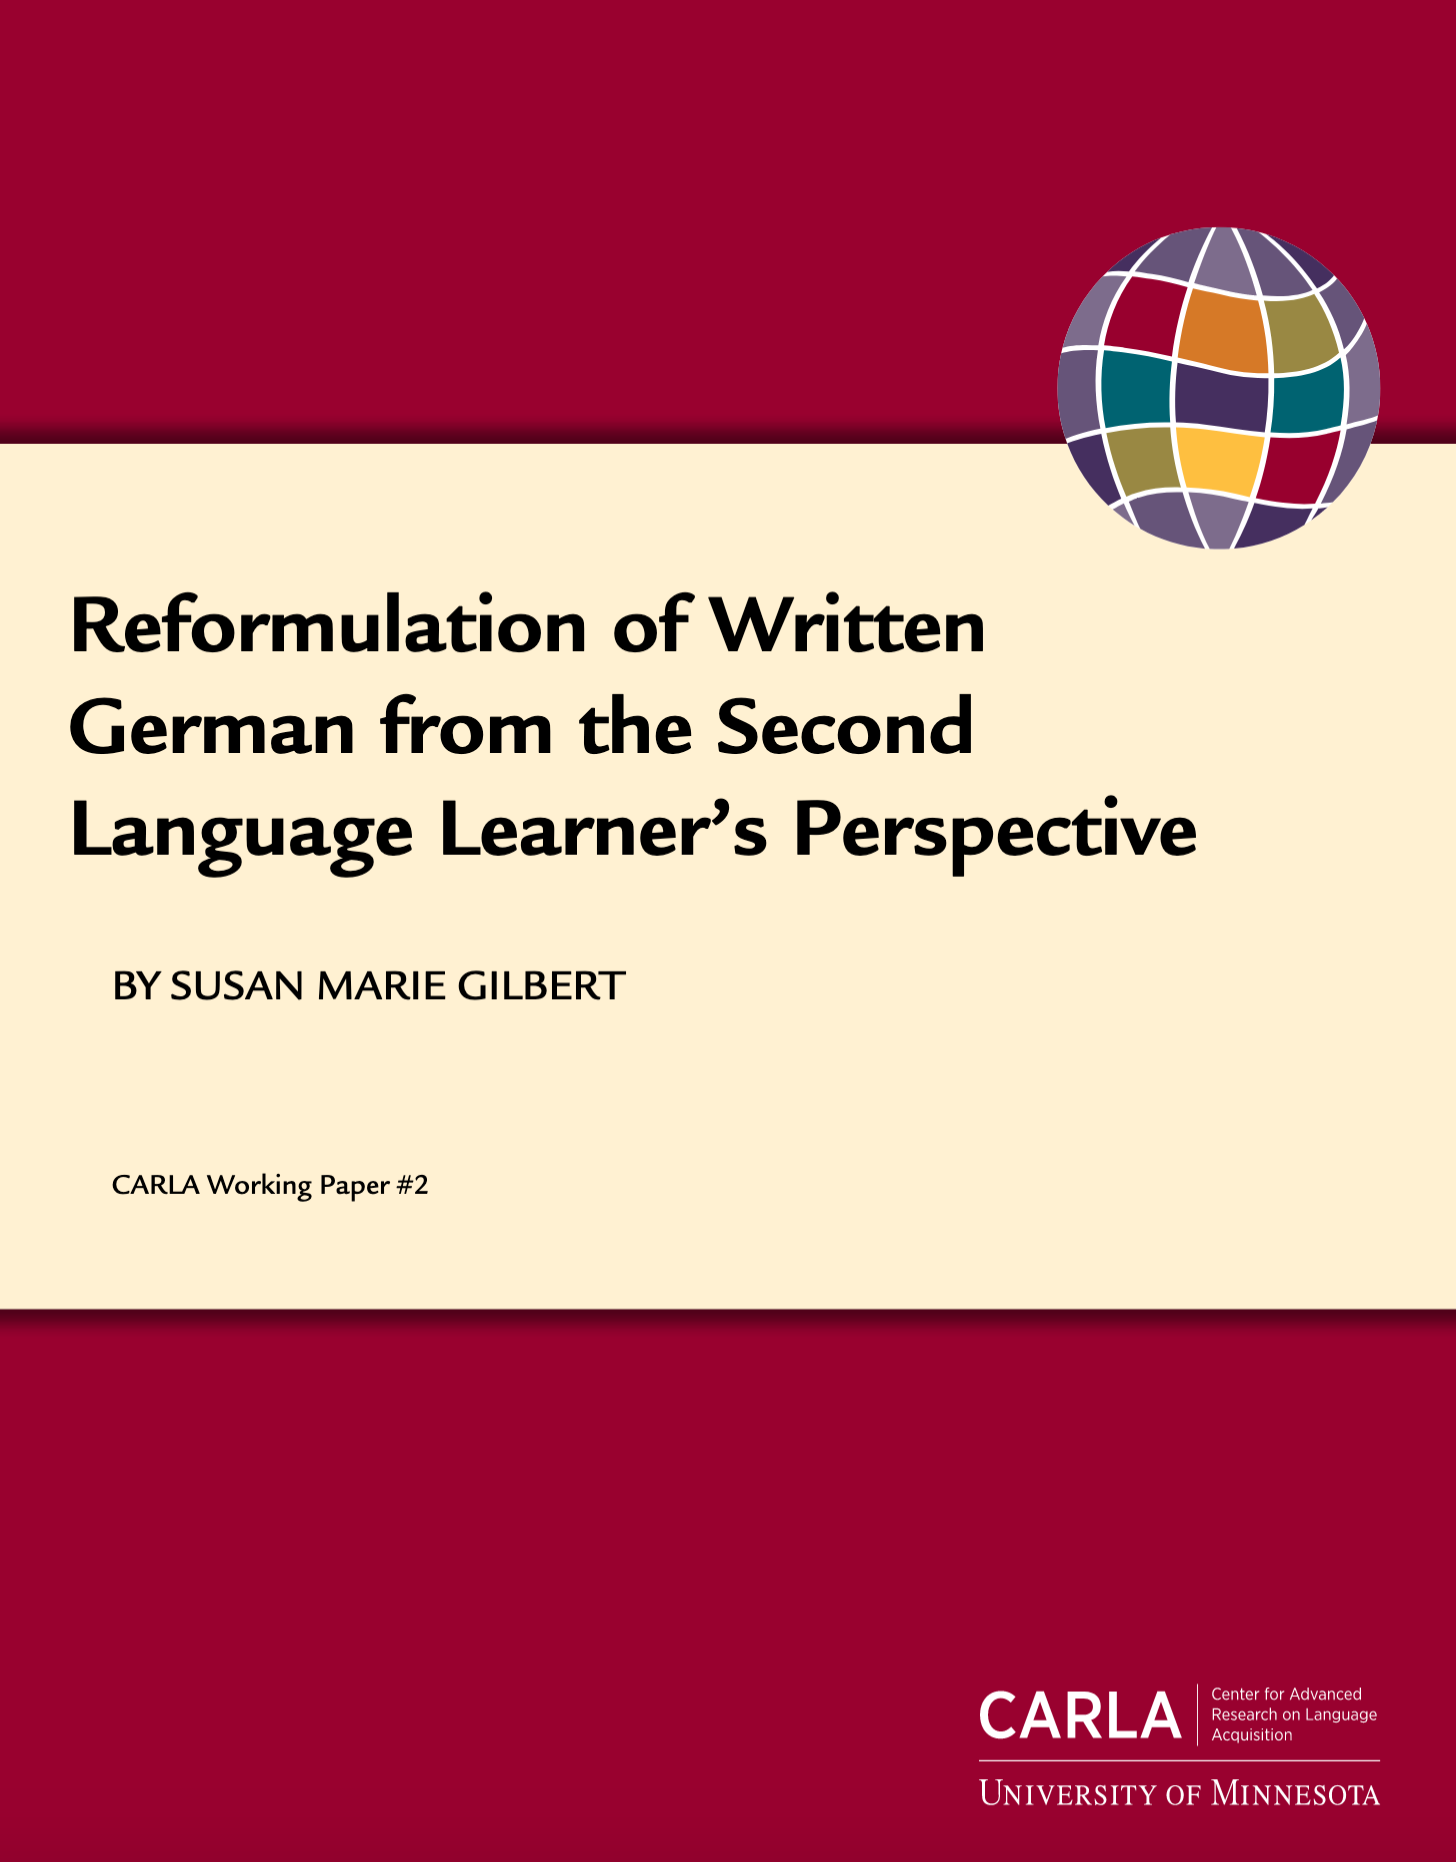 Reformulation of Written German From the Second Language Learner's Perspective